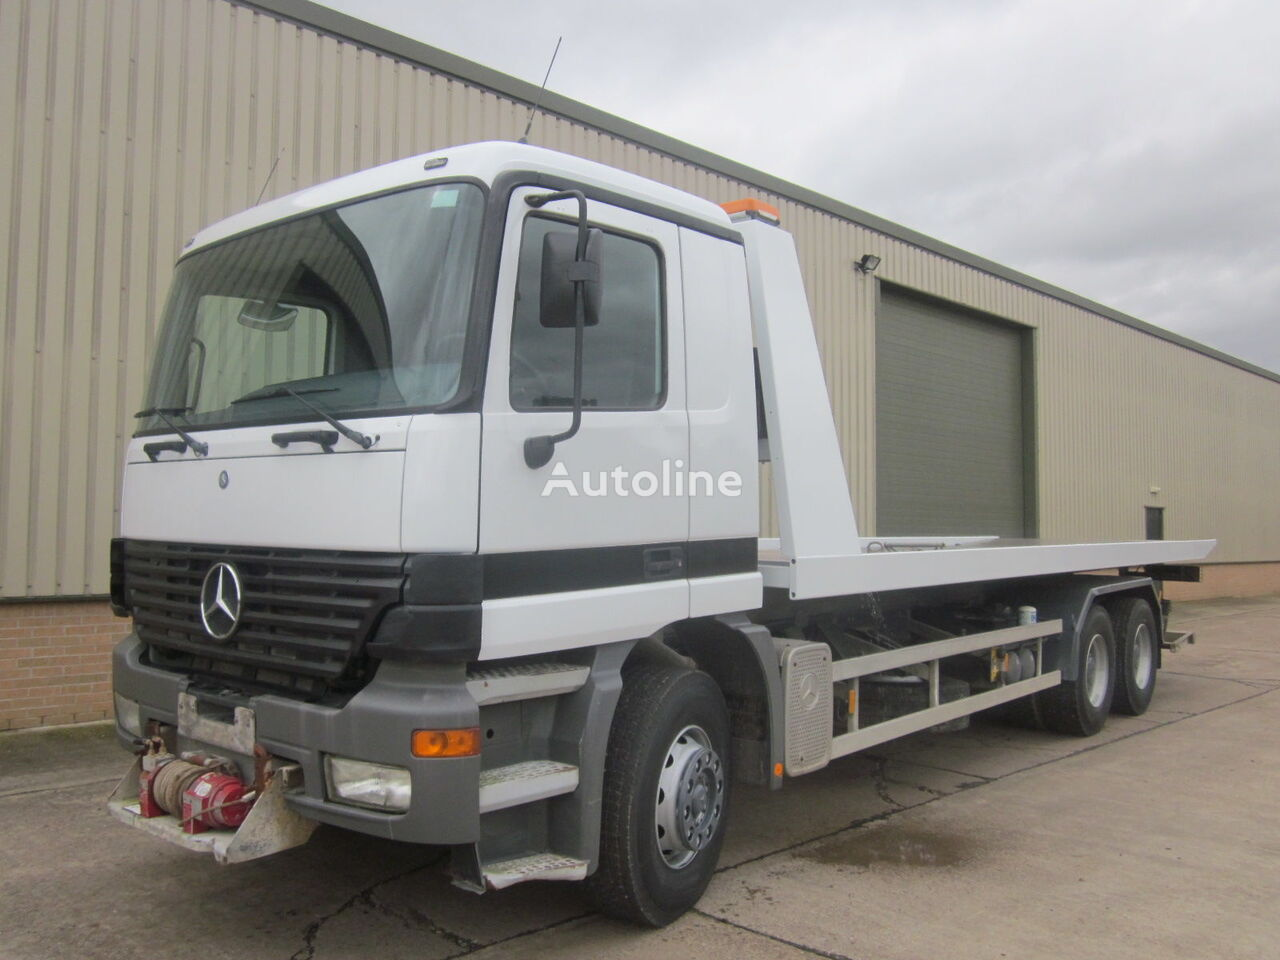 Used Tow Trucks For Sale Under